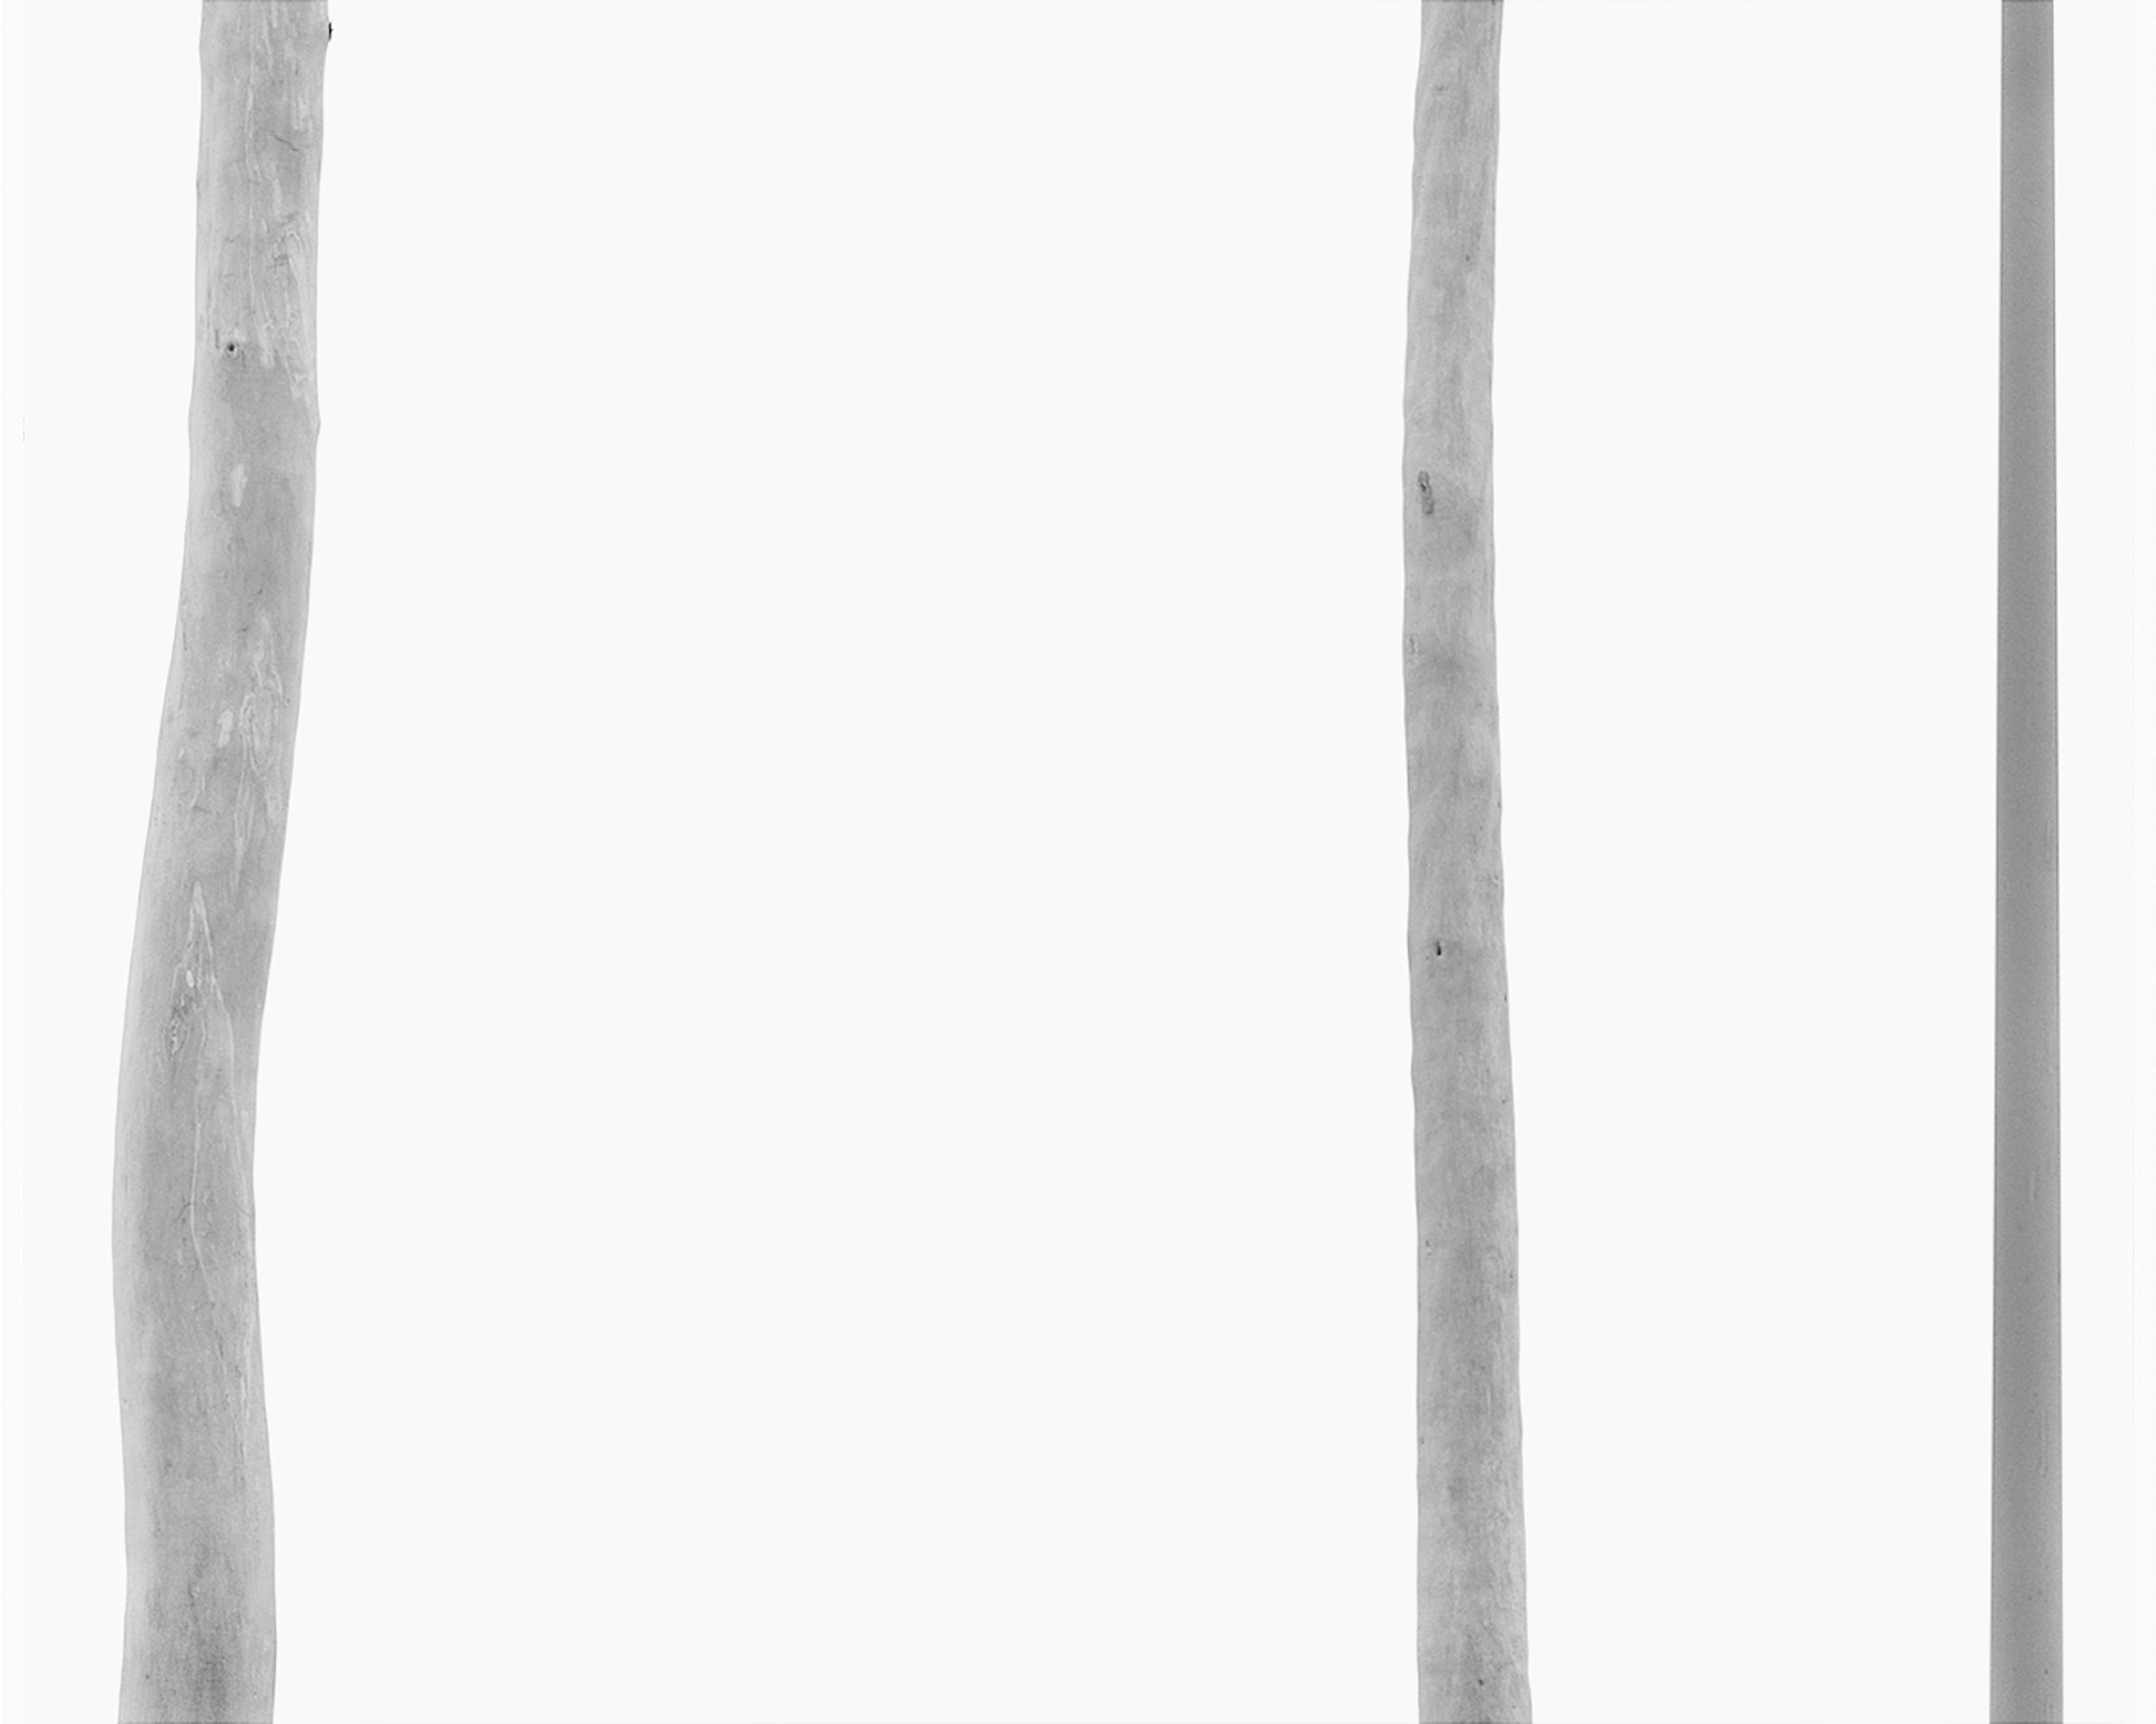 Two Trees, One Pole, 1988